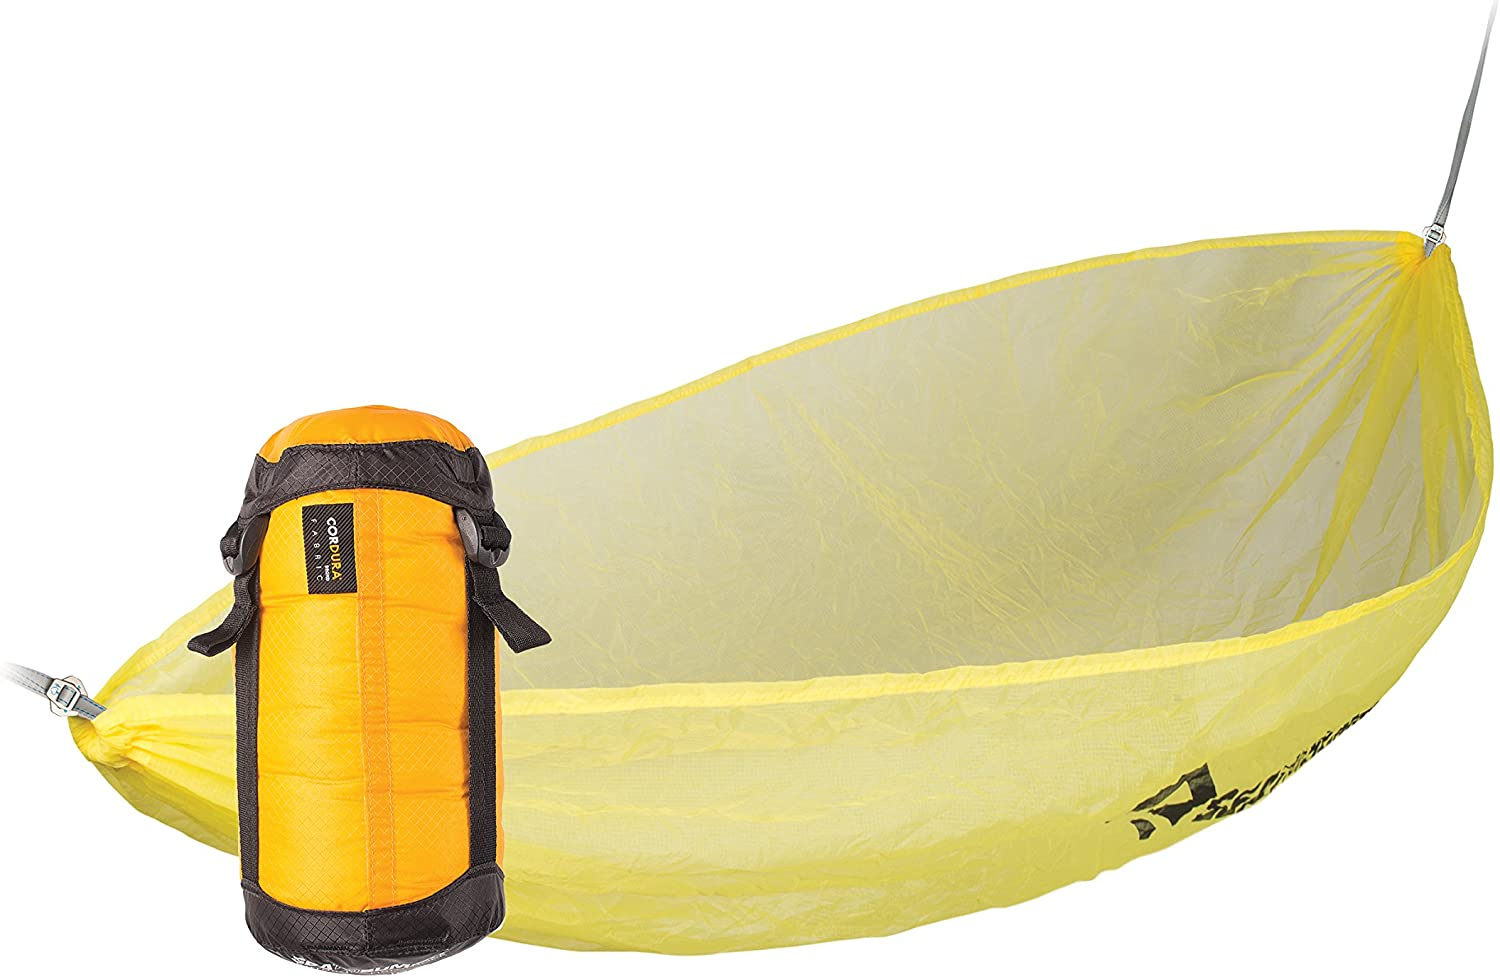 For Travel /& Camping Sea to Summit Ultralight Hammock Single Yellow Lightweight /& Compact